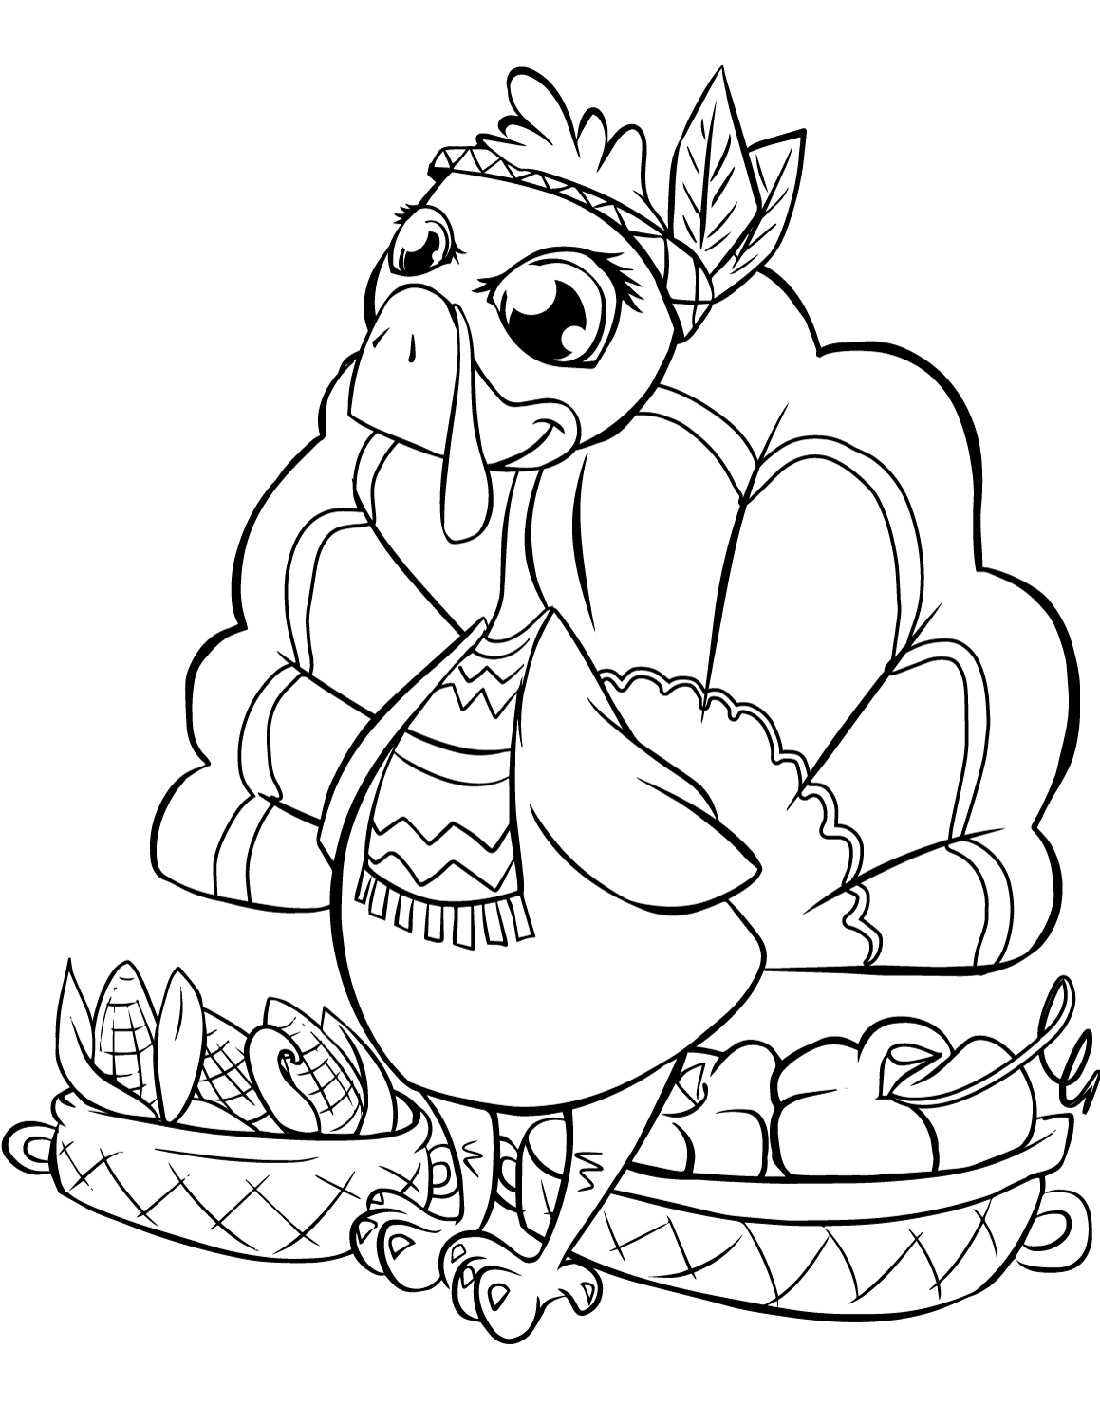 free coloring pages thanksgiving thanksgiving day printable coloring pages minnesota miranda free thanksgiving coloring pages